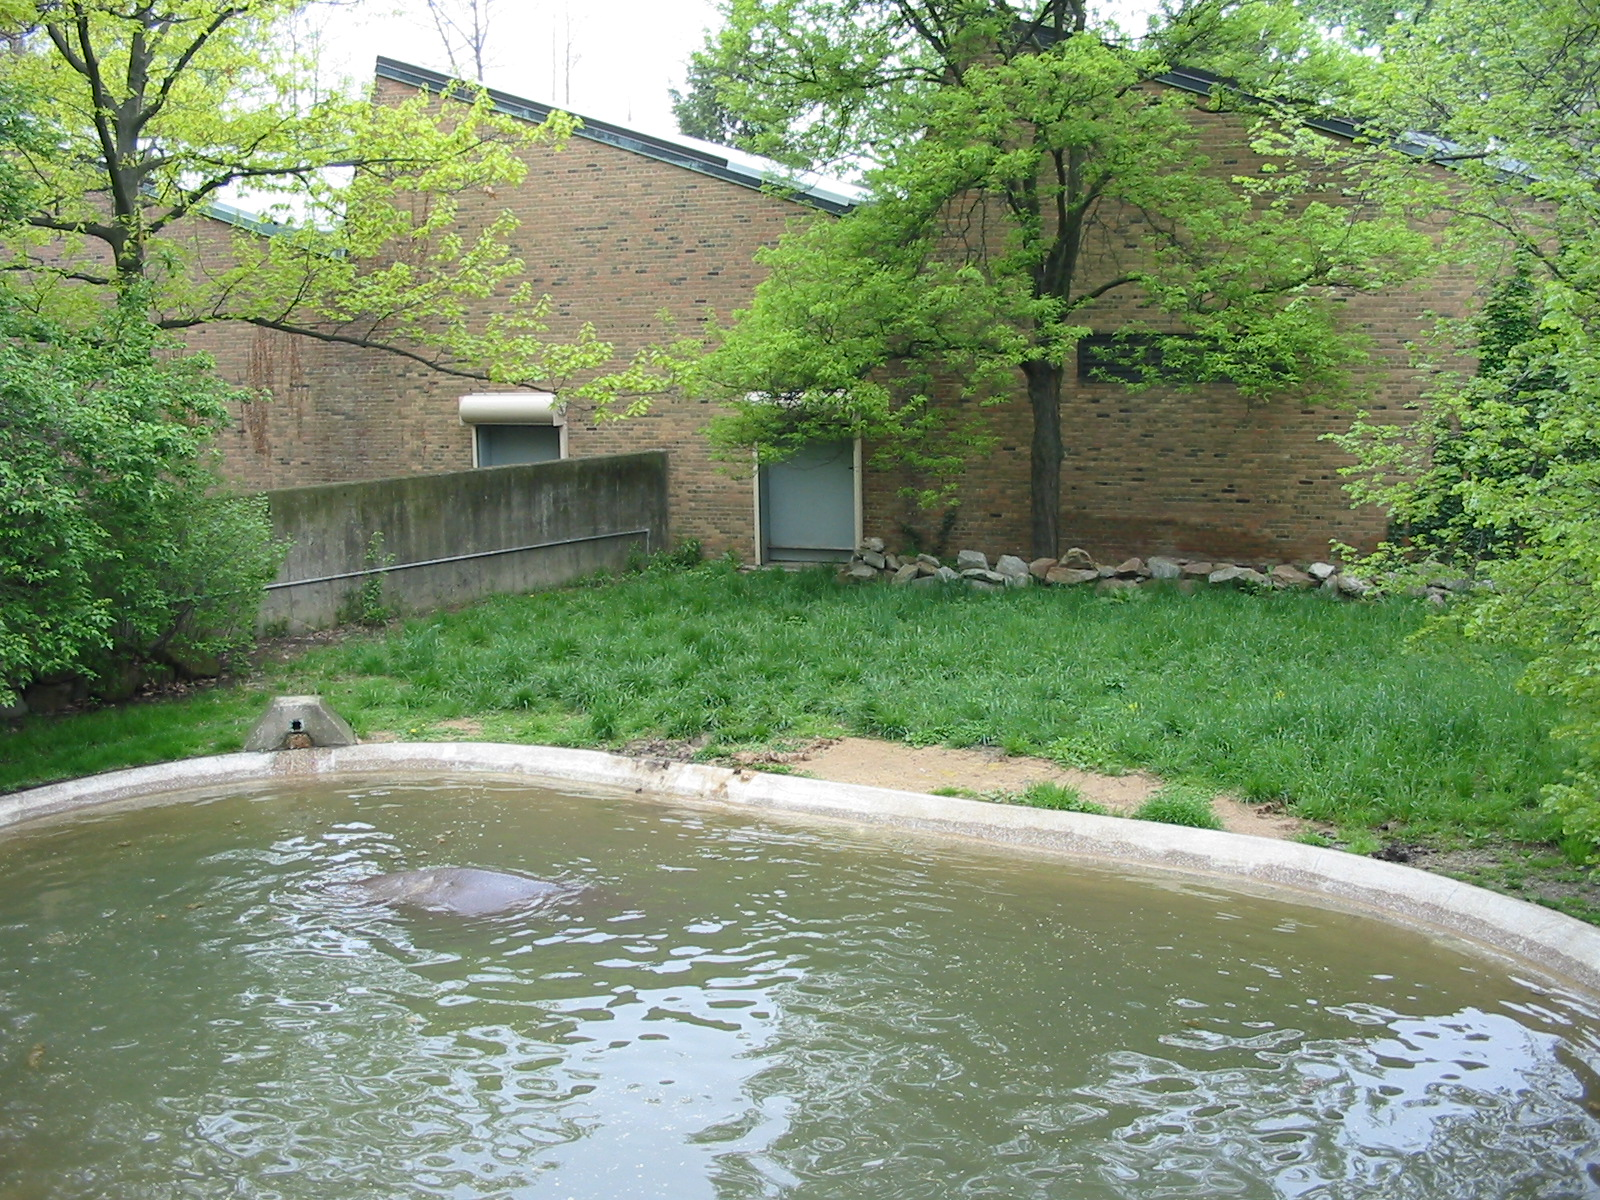 Cleveland zoo 2003 hippopotamus exhibit at the old for Classic house 2003